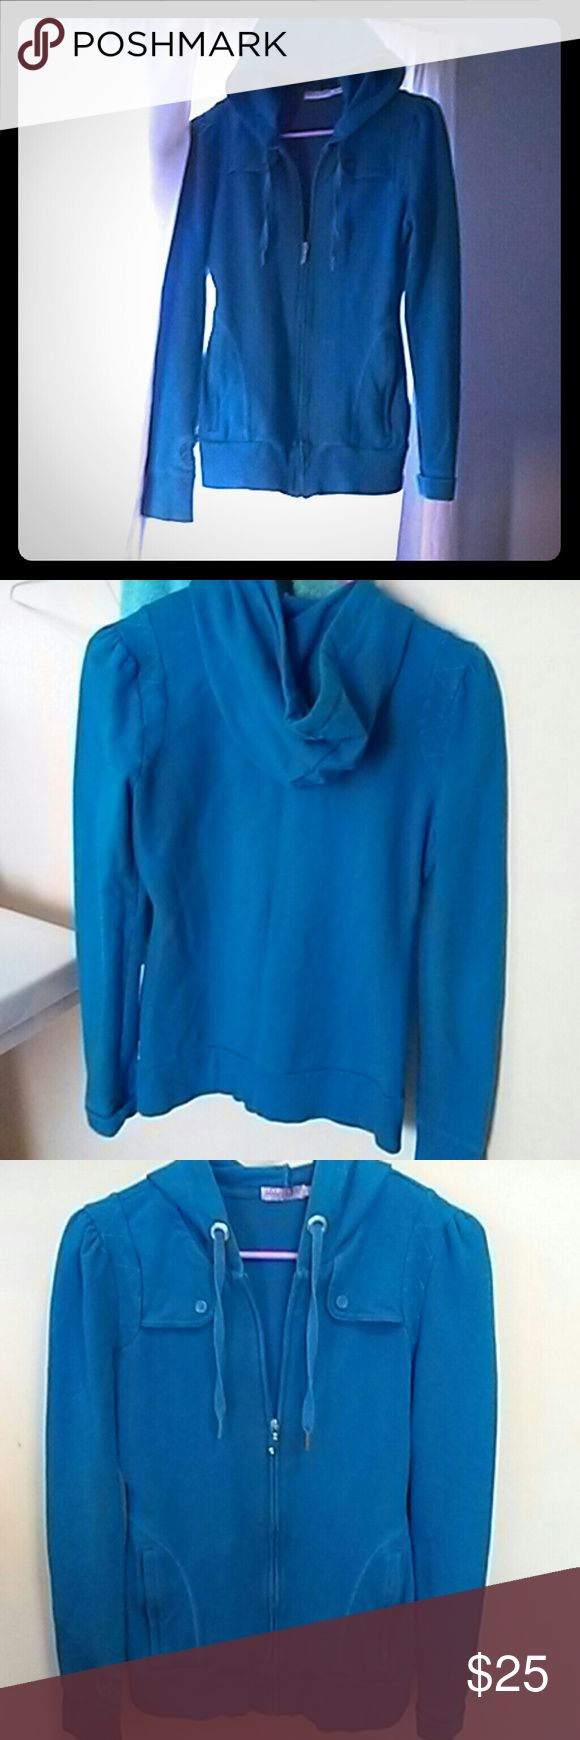 Juicy Couture Sz small petite hooded zip up jacket adorable .barely worn! its a great blue color and is a zipper hoody.  has two front pockets and cute buttons and design up top.. Juicy Couture Tops Sweatshirts & Hoodies